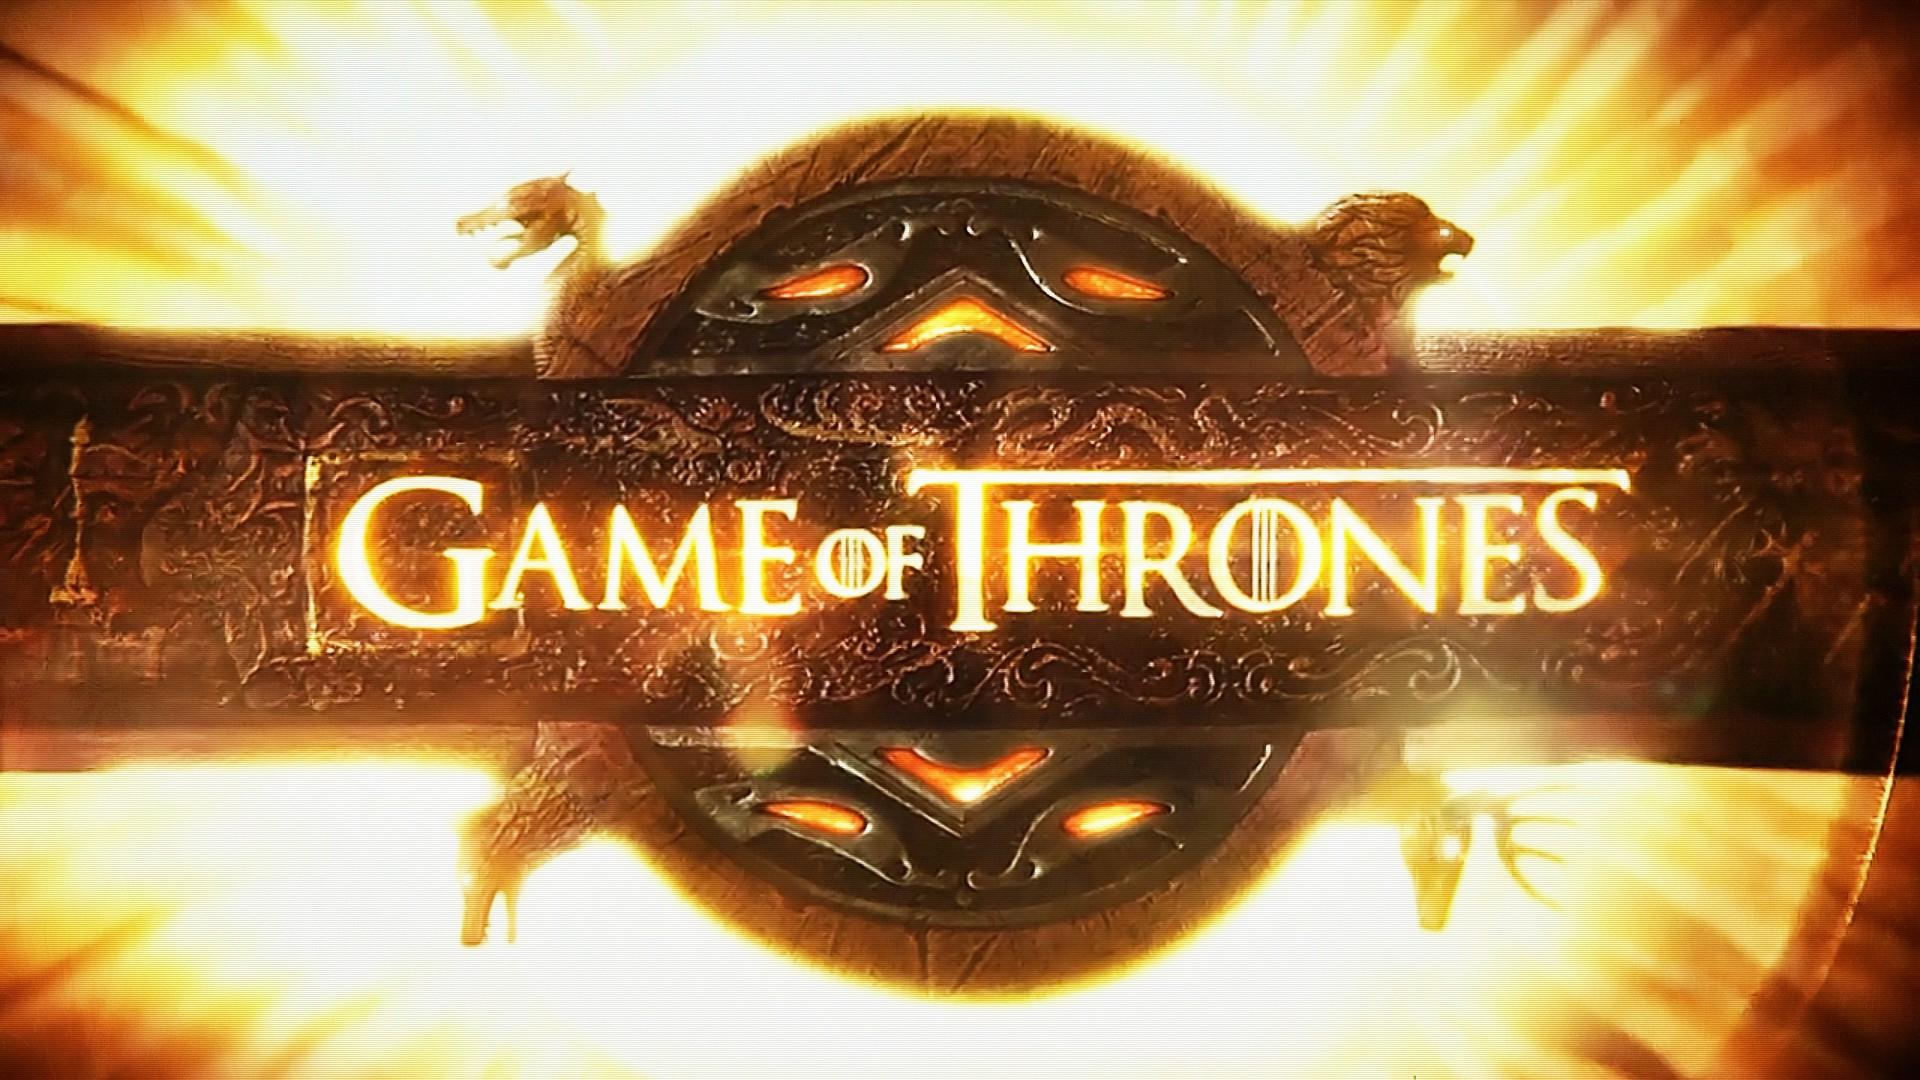 Top 20 Game of Thrones Facts You've Never Heard Before [Infographic]